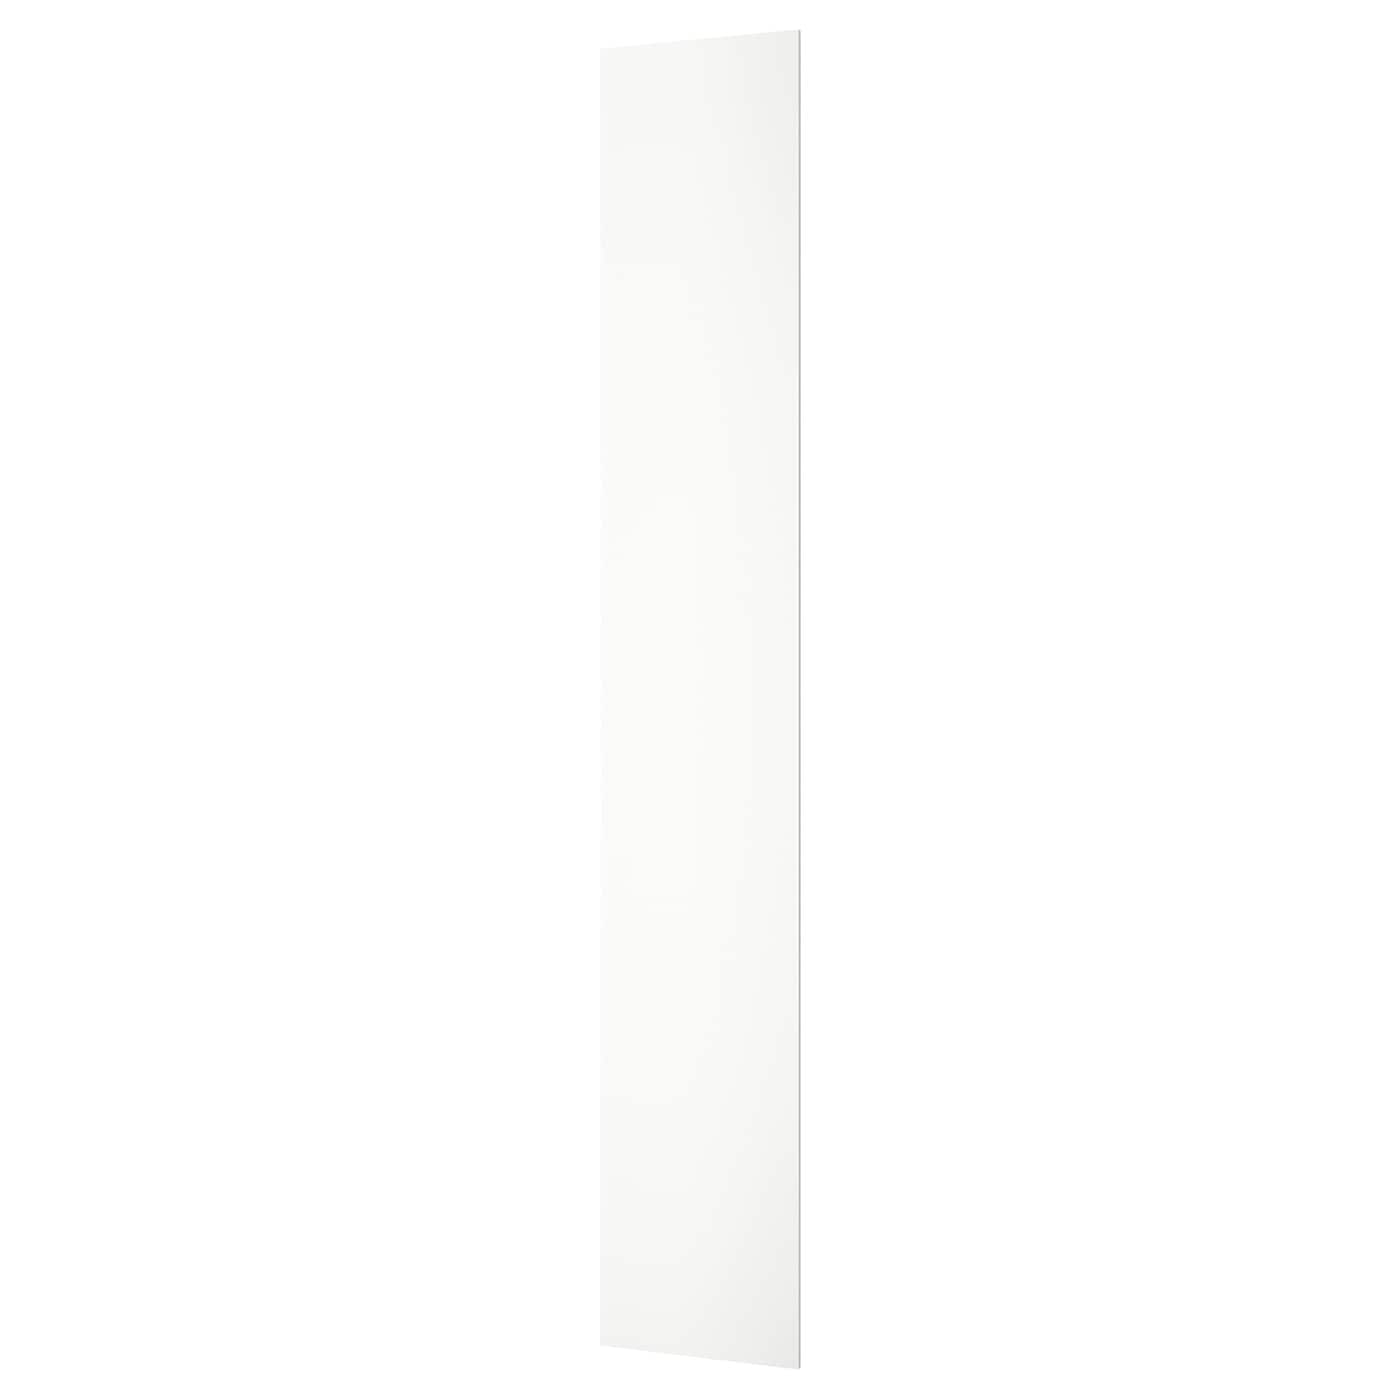 IKEA KUNGSBACKA cover panel 25 year guarantee. Read about the terms in the guarantee brochure.